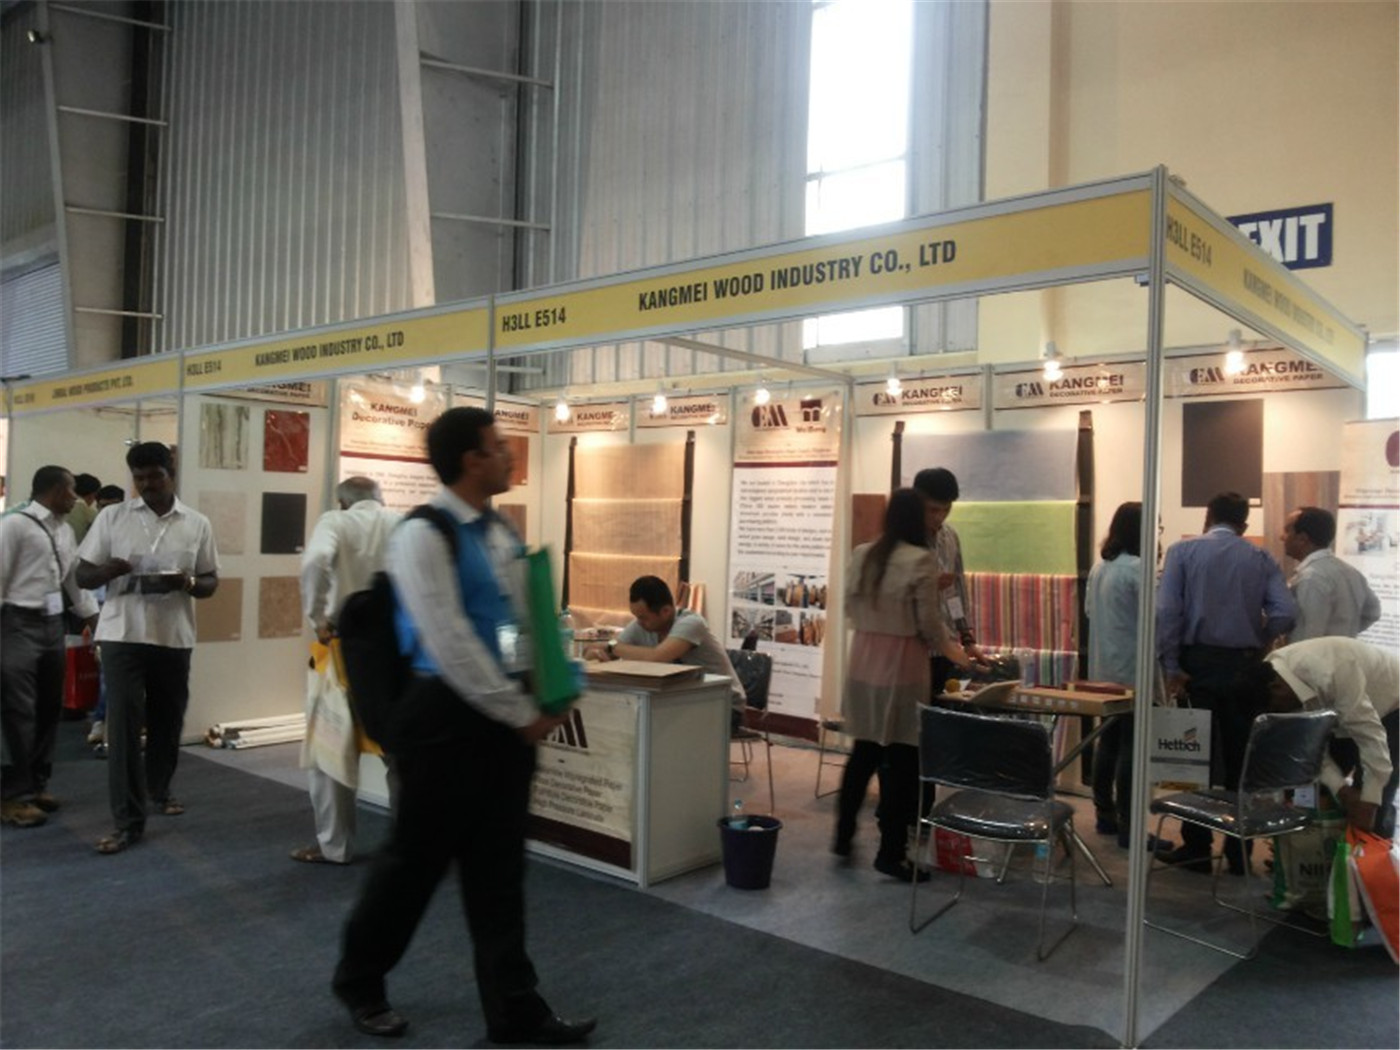 Indiawood 2014 Woodworking and Machinery Fair